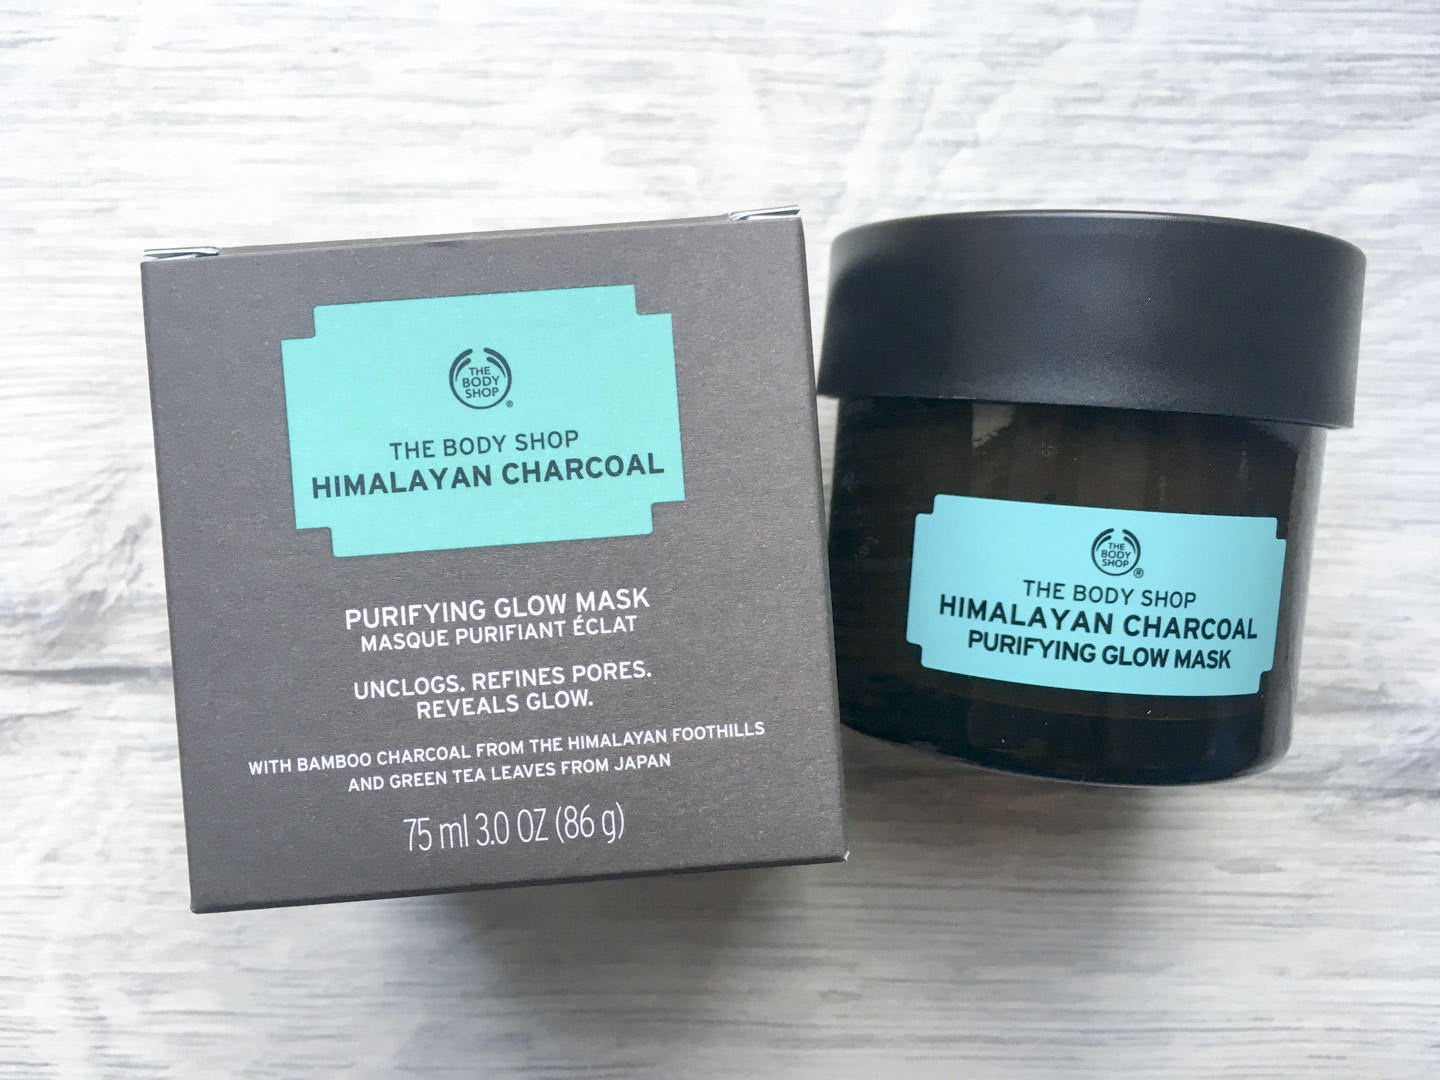 The Body Shop Himalayan Charcoal Purifying Glow Mask flat lay photograph